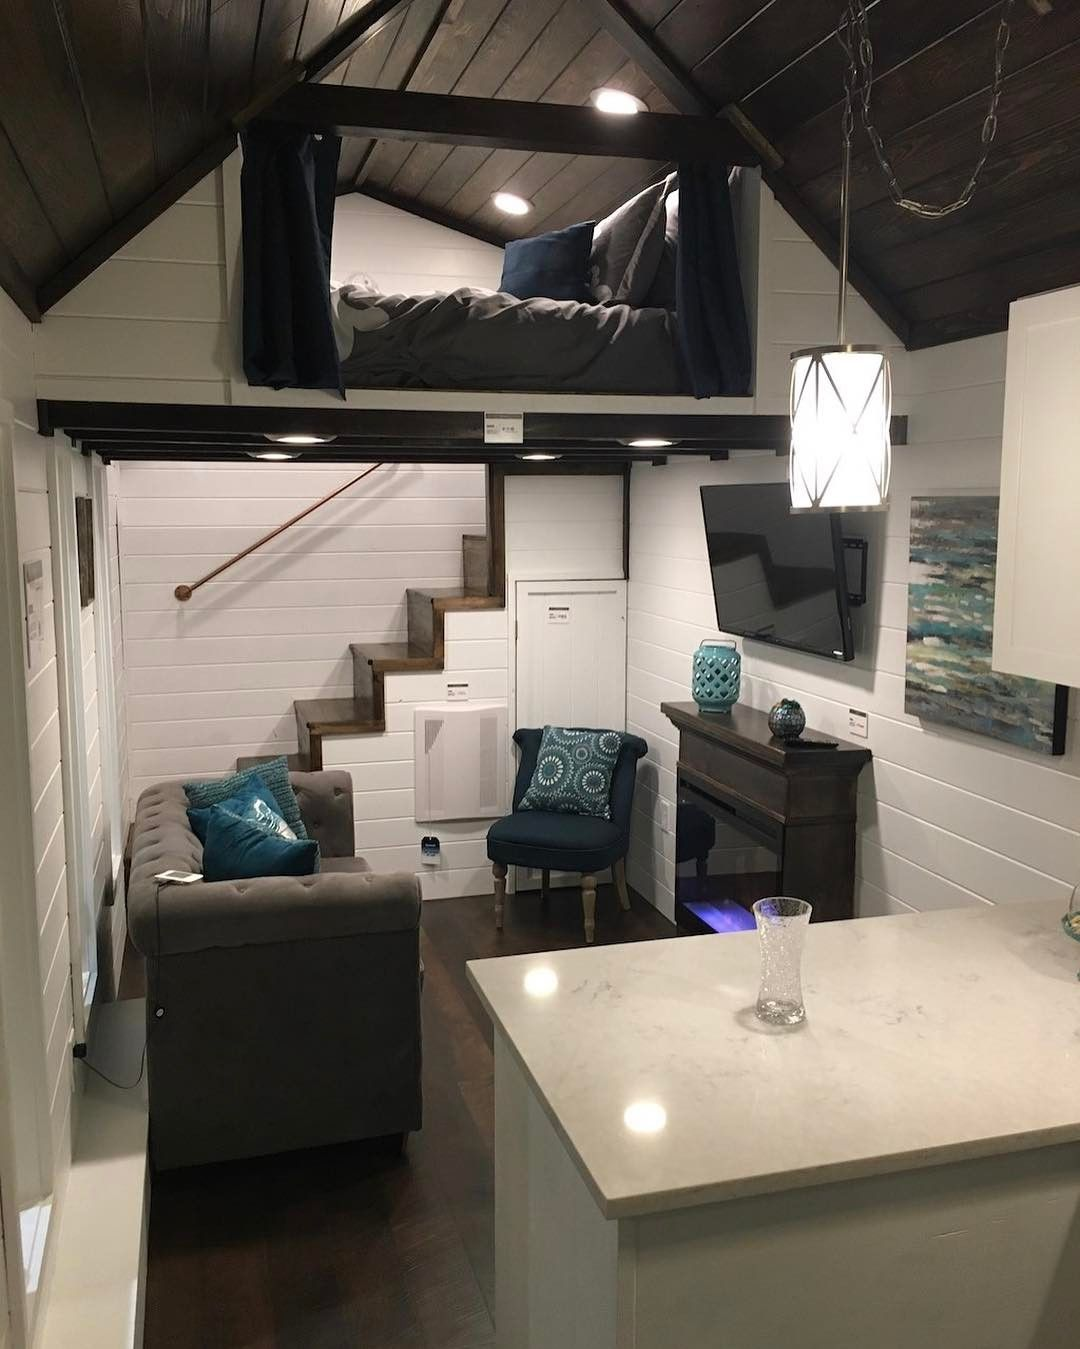 Tiny House Inspiration Back Stairs Up To A Partially Enclosed